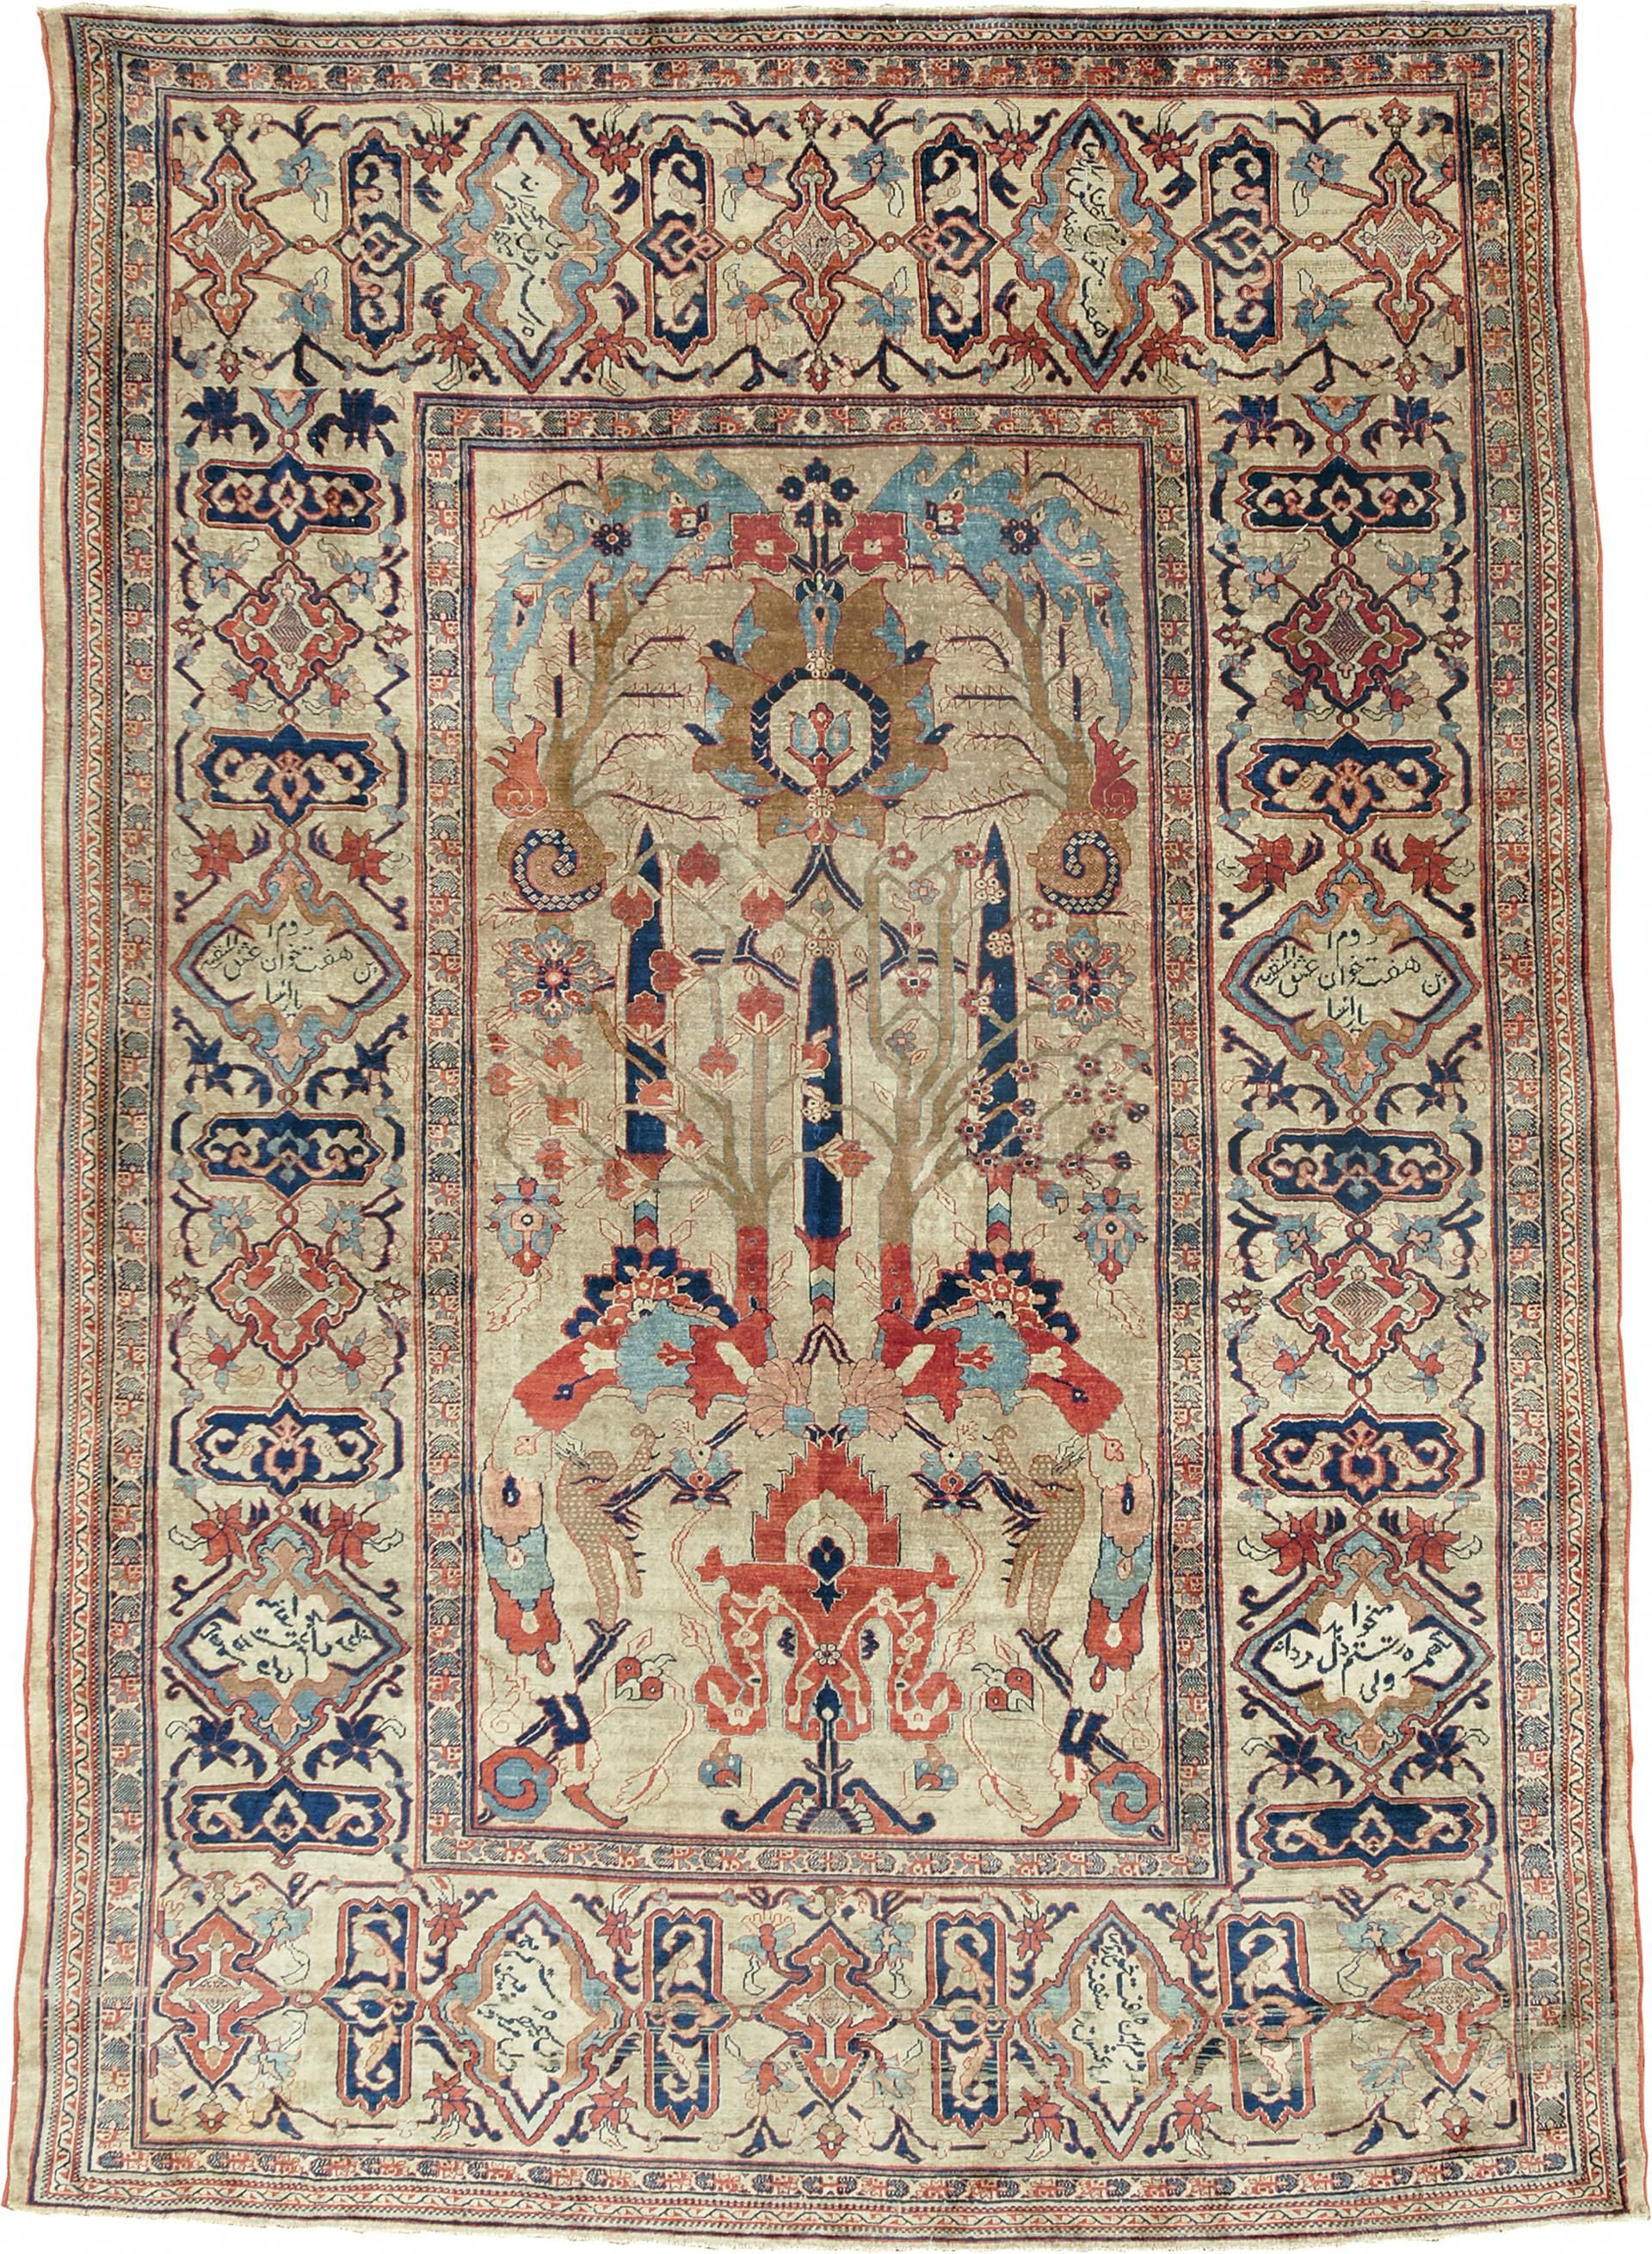 Carpet Runners For Sale Near Me PlacementOfCarpetRunners